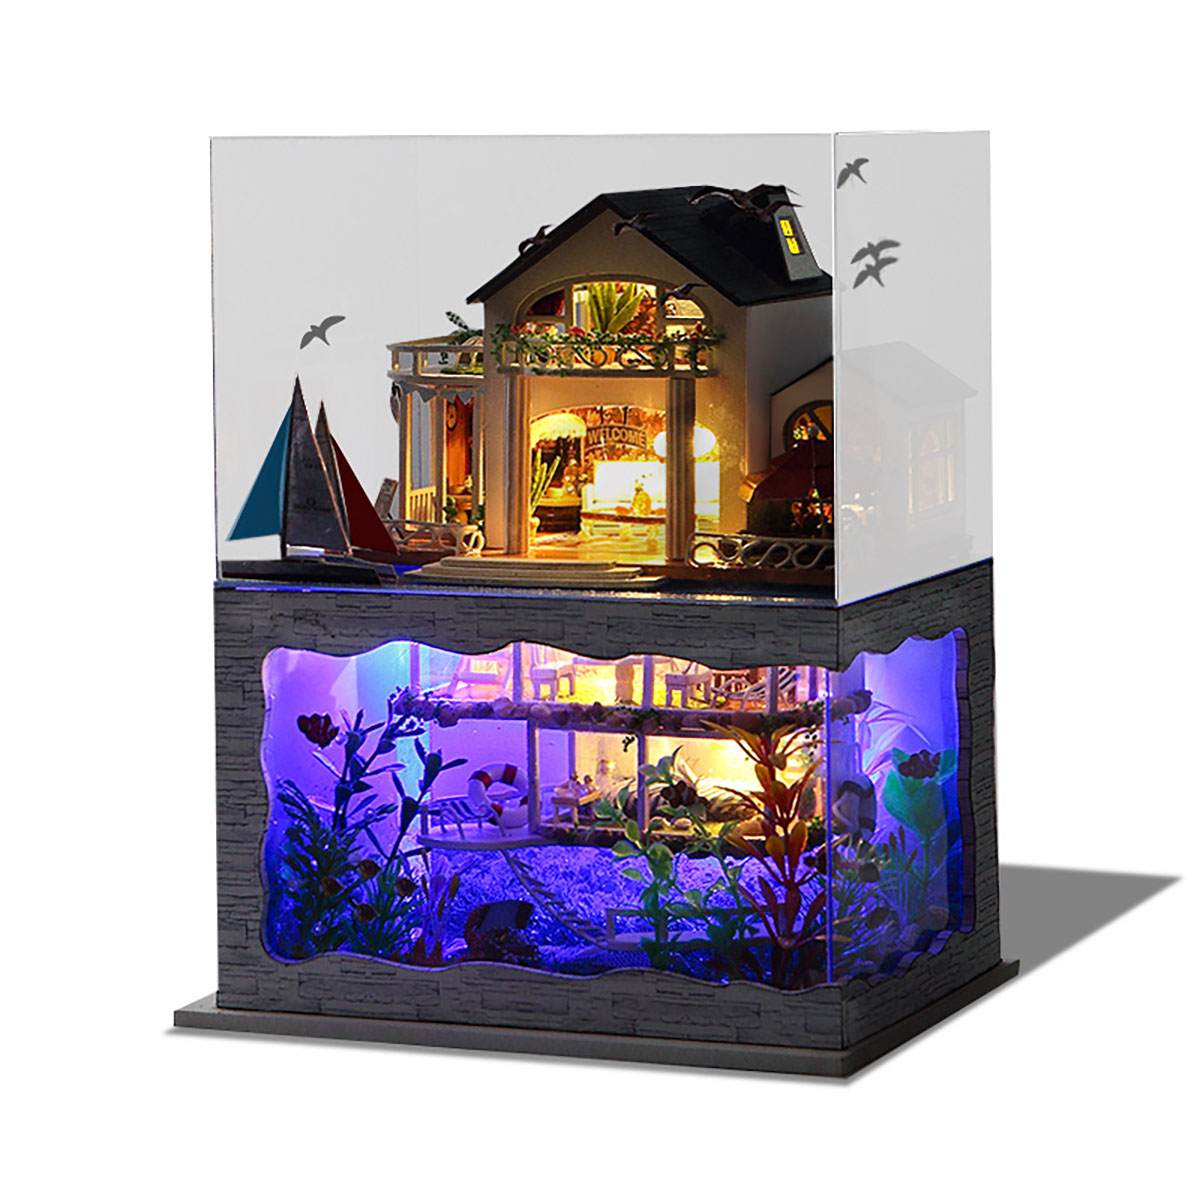 Wooden DIY Handmade Assemble Double Layer Beautiful View Doll House Miniature Furniture Kit Education Toy for for Collection Birthday Gift